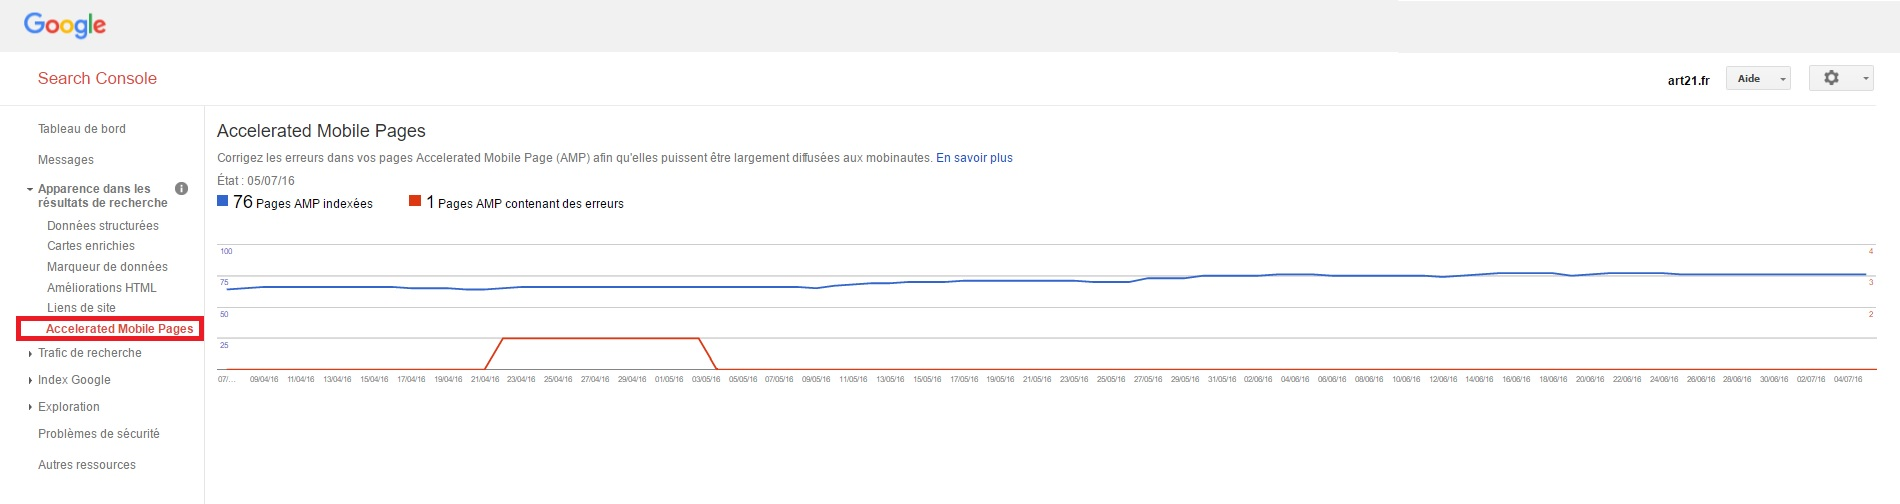 Rapport AMP de la Search Console